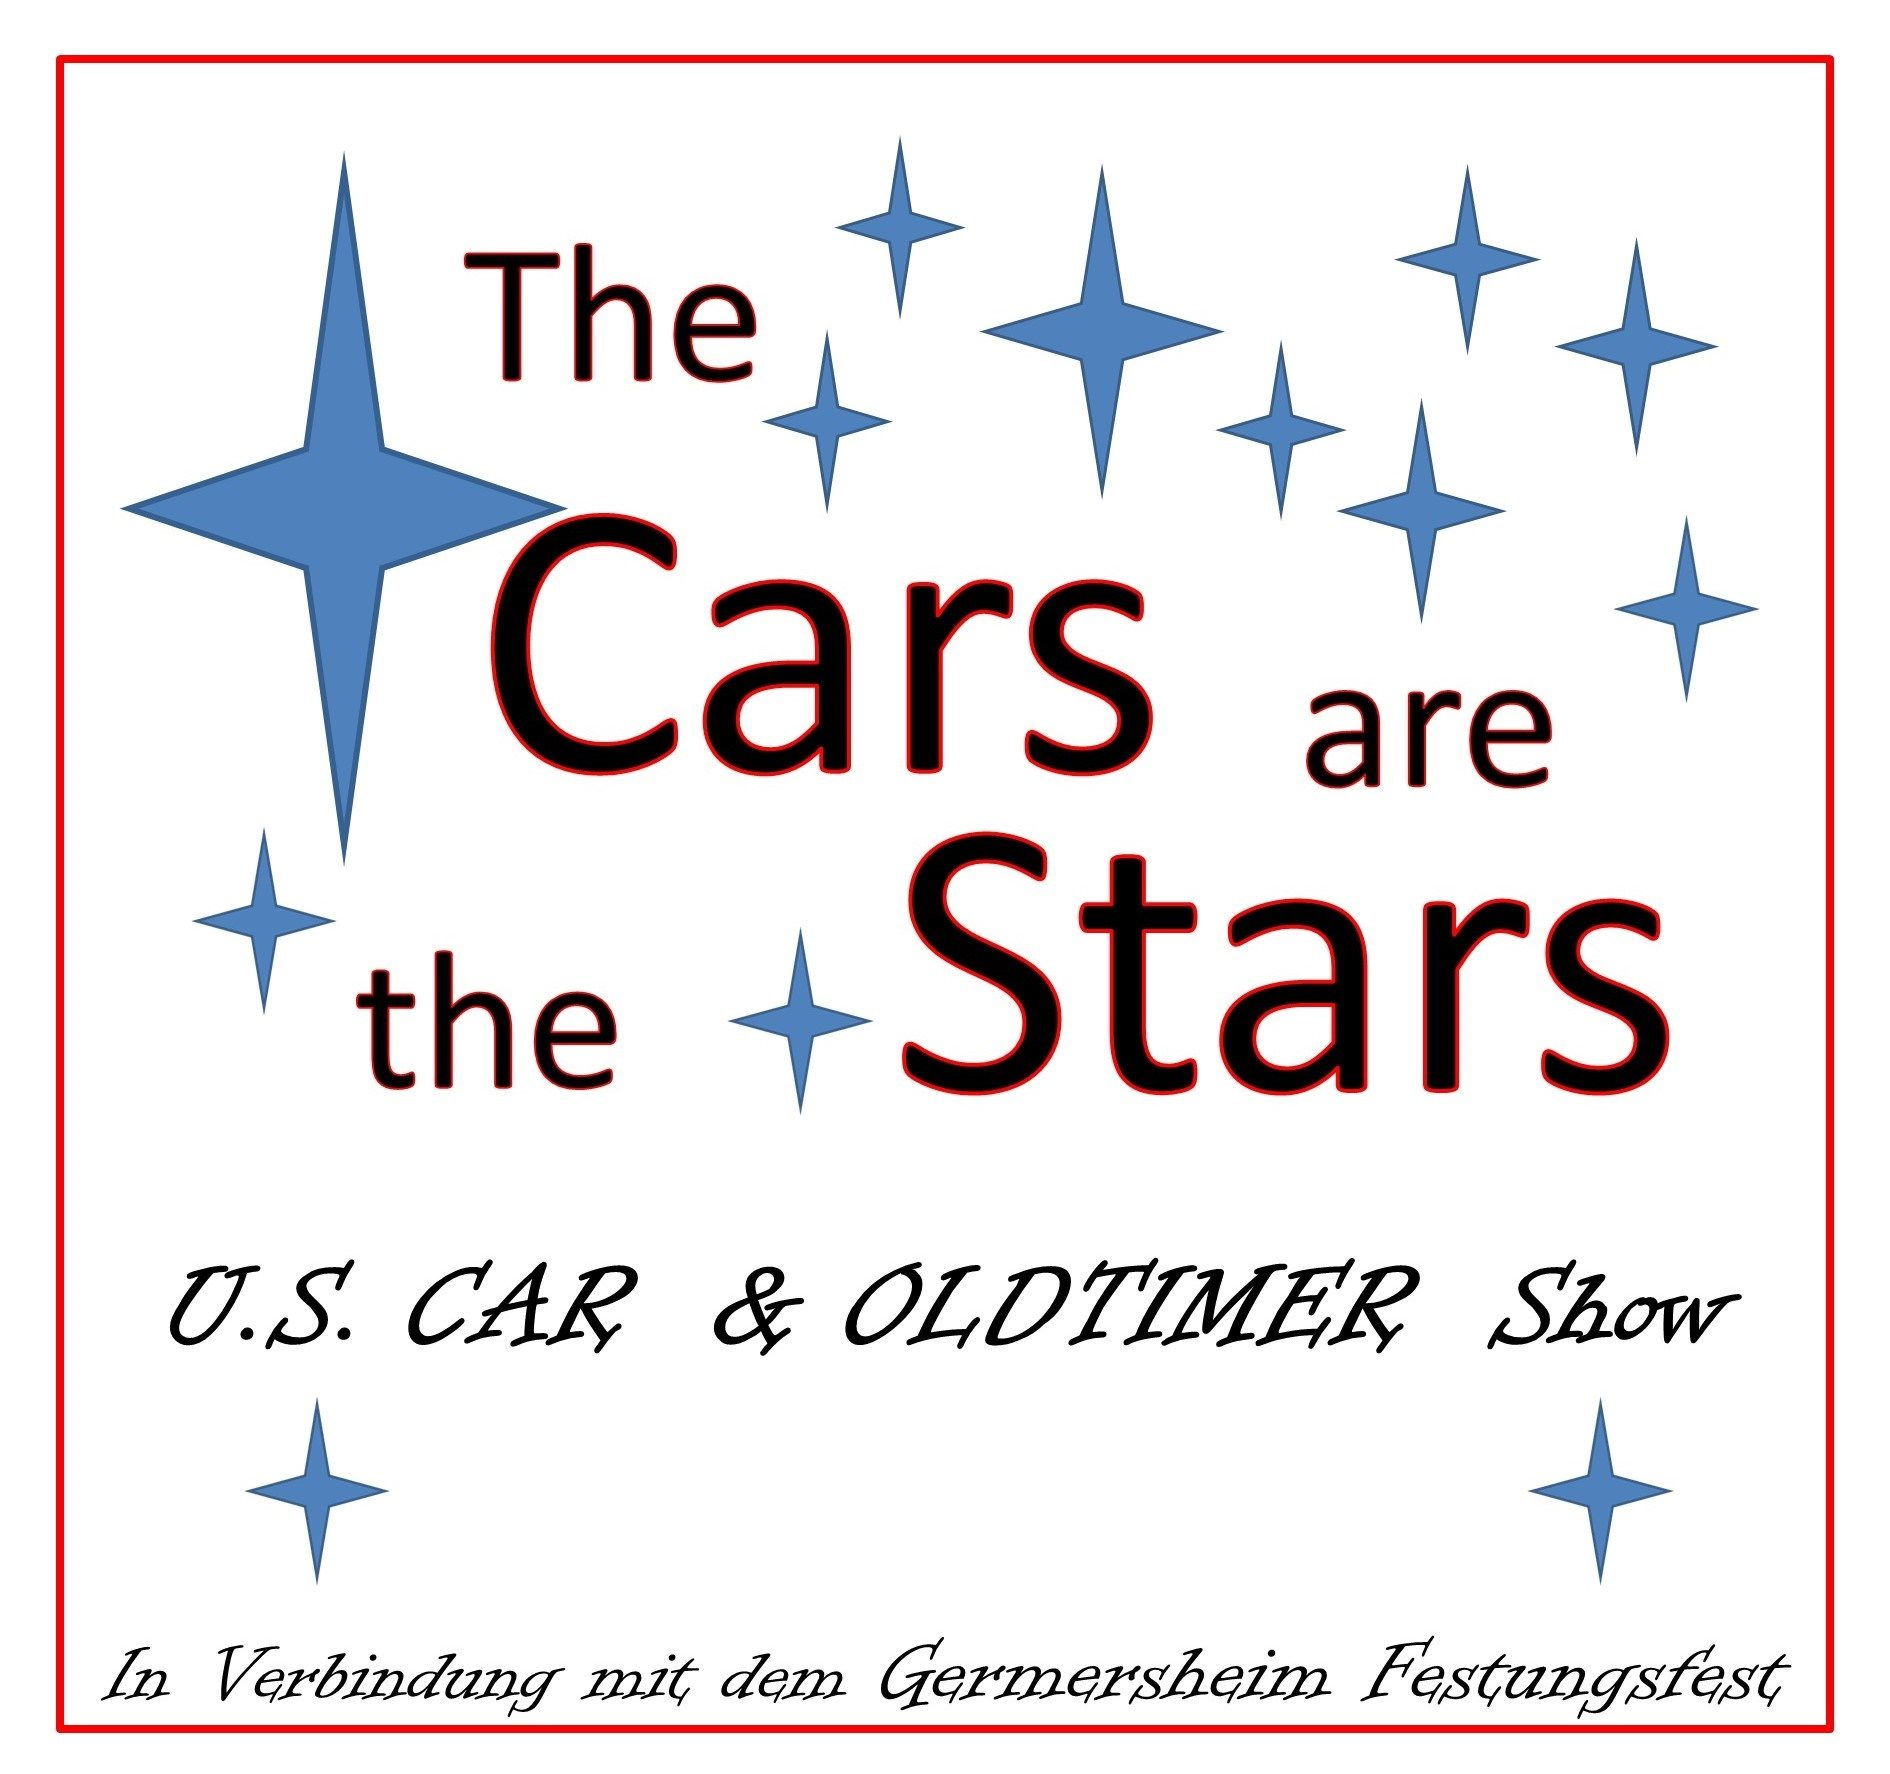 The Cars are the Stars